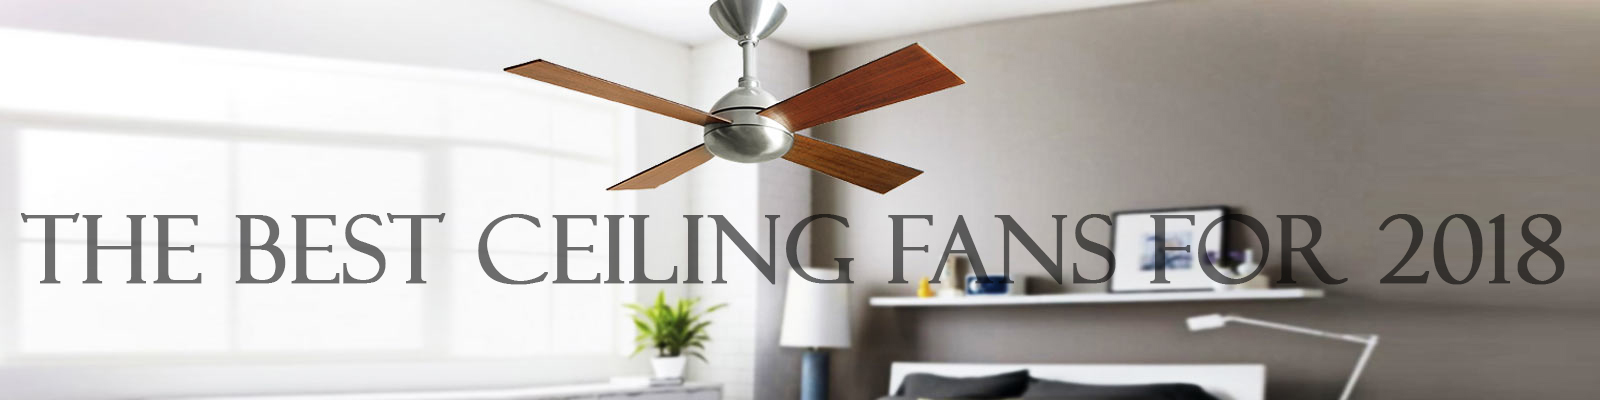 The best ceiling fans 2018